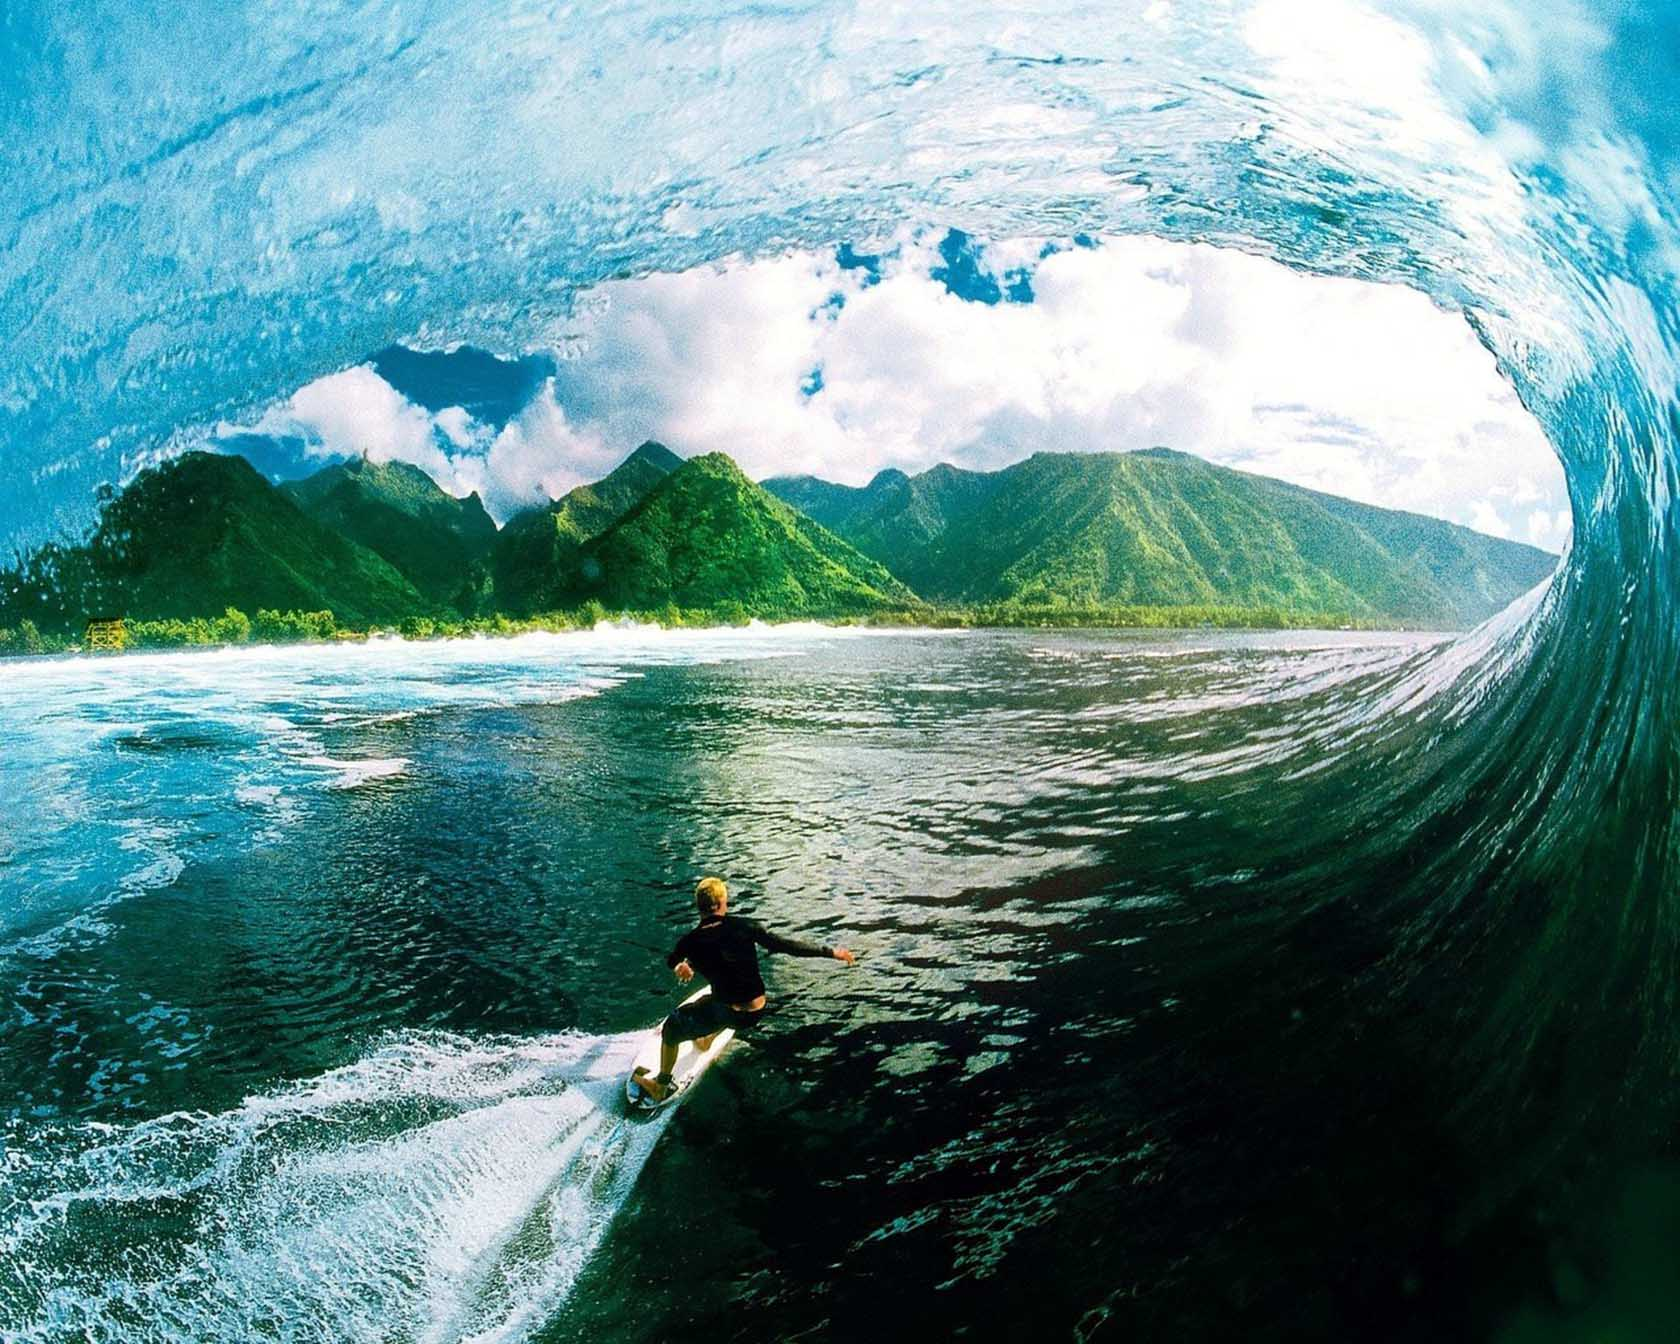 100% Quality Surfer HD Wallpapers, 1680x1344 px